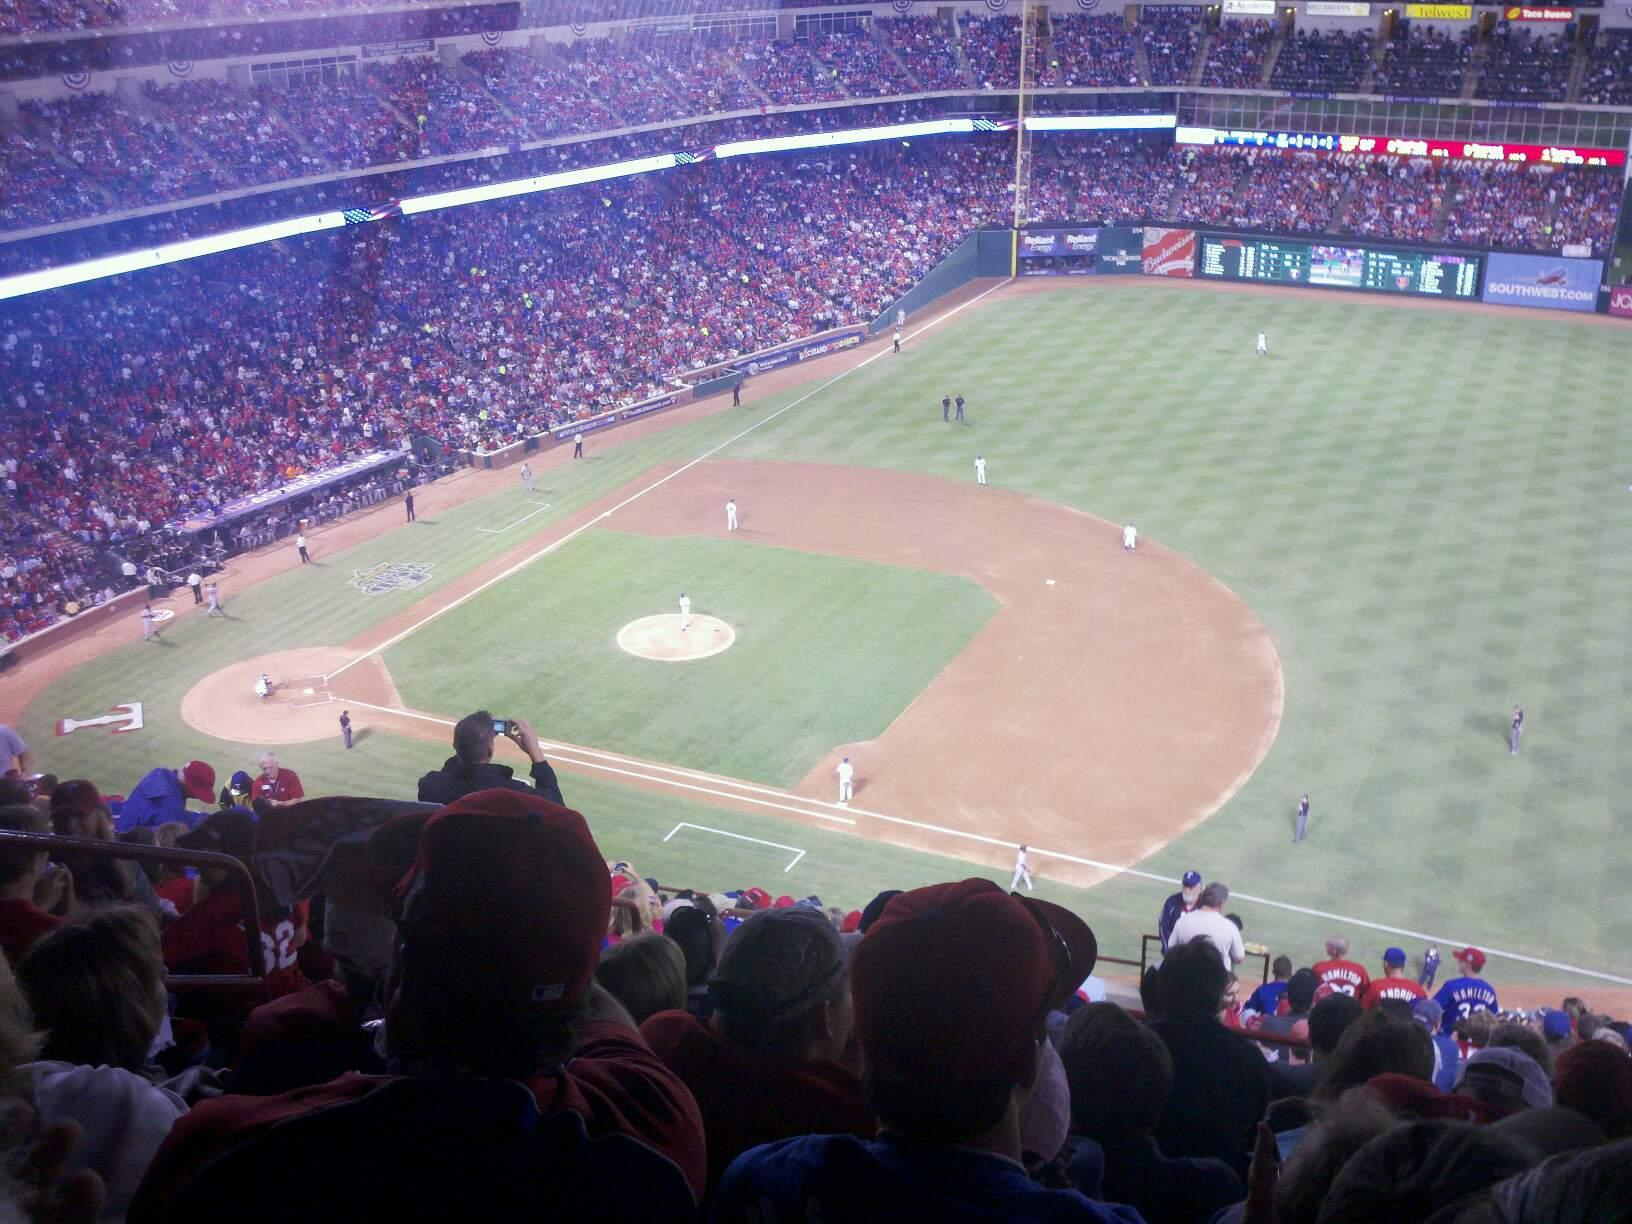 Globe Life Park in Arlington Section 326 Row 20 Seat 6